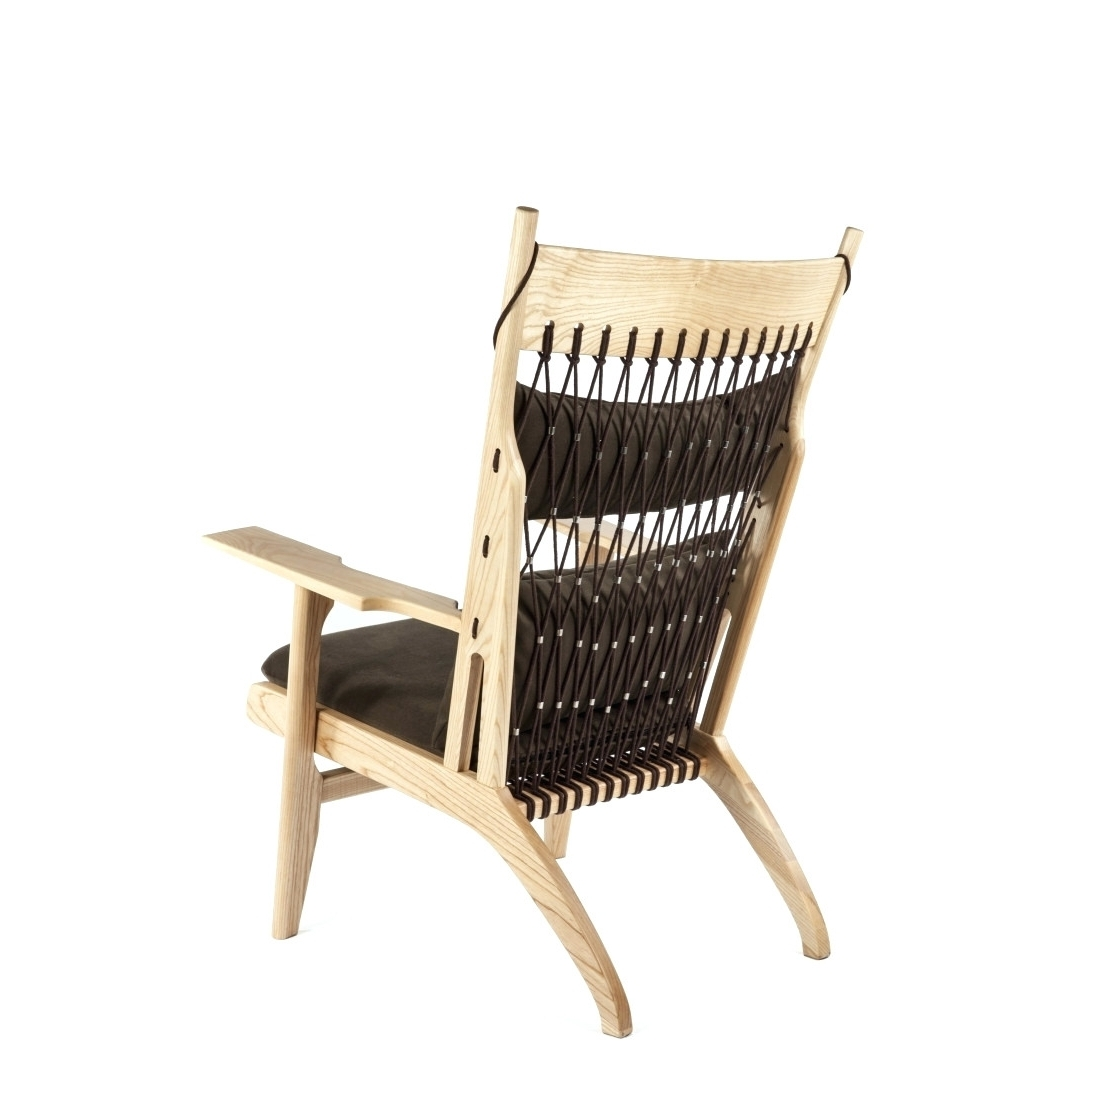 Web Chaise Lounge Lawn Chairs In Well Liked Web Chaise Lounge Lawn Chair • Lounge Chairs Ideas (View 8 of 15)